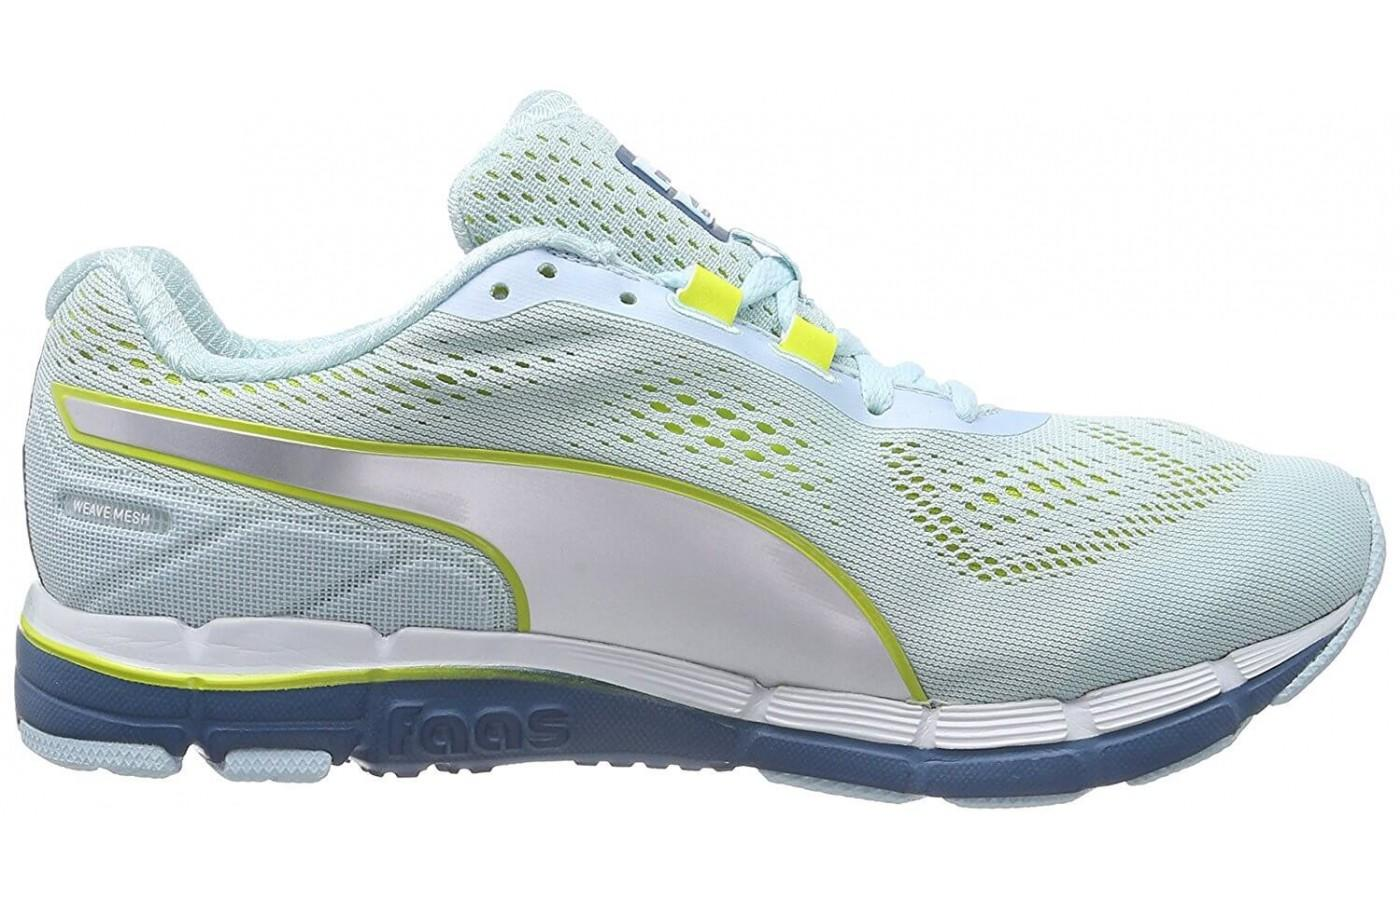 The Puma Faas 600 v3 is known for its glove-like fit through the upper